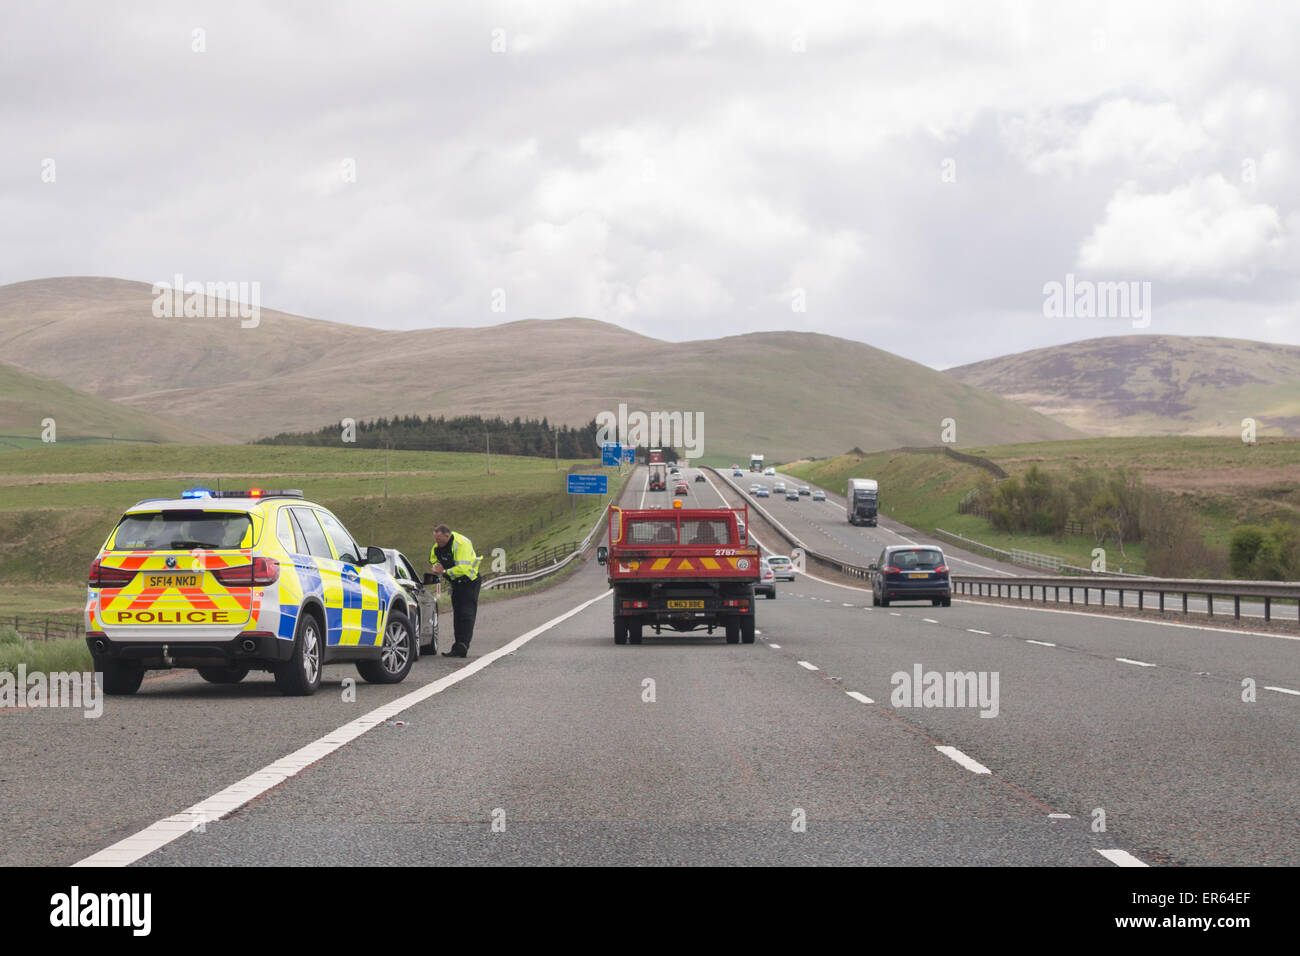 Motorist pulled over by the side of southbound M74 motorway by police officer in patrol car - Scotland, UK - Stock Image